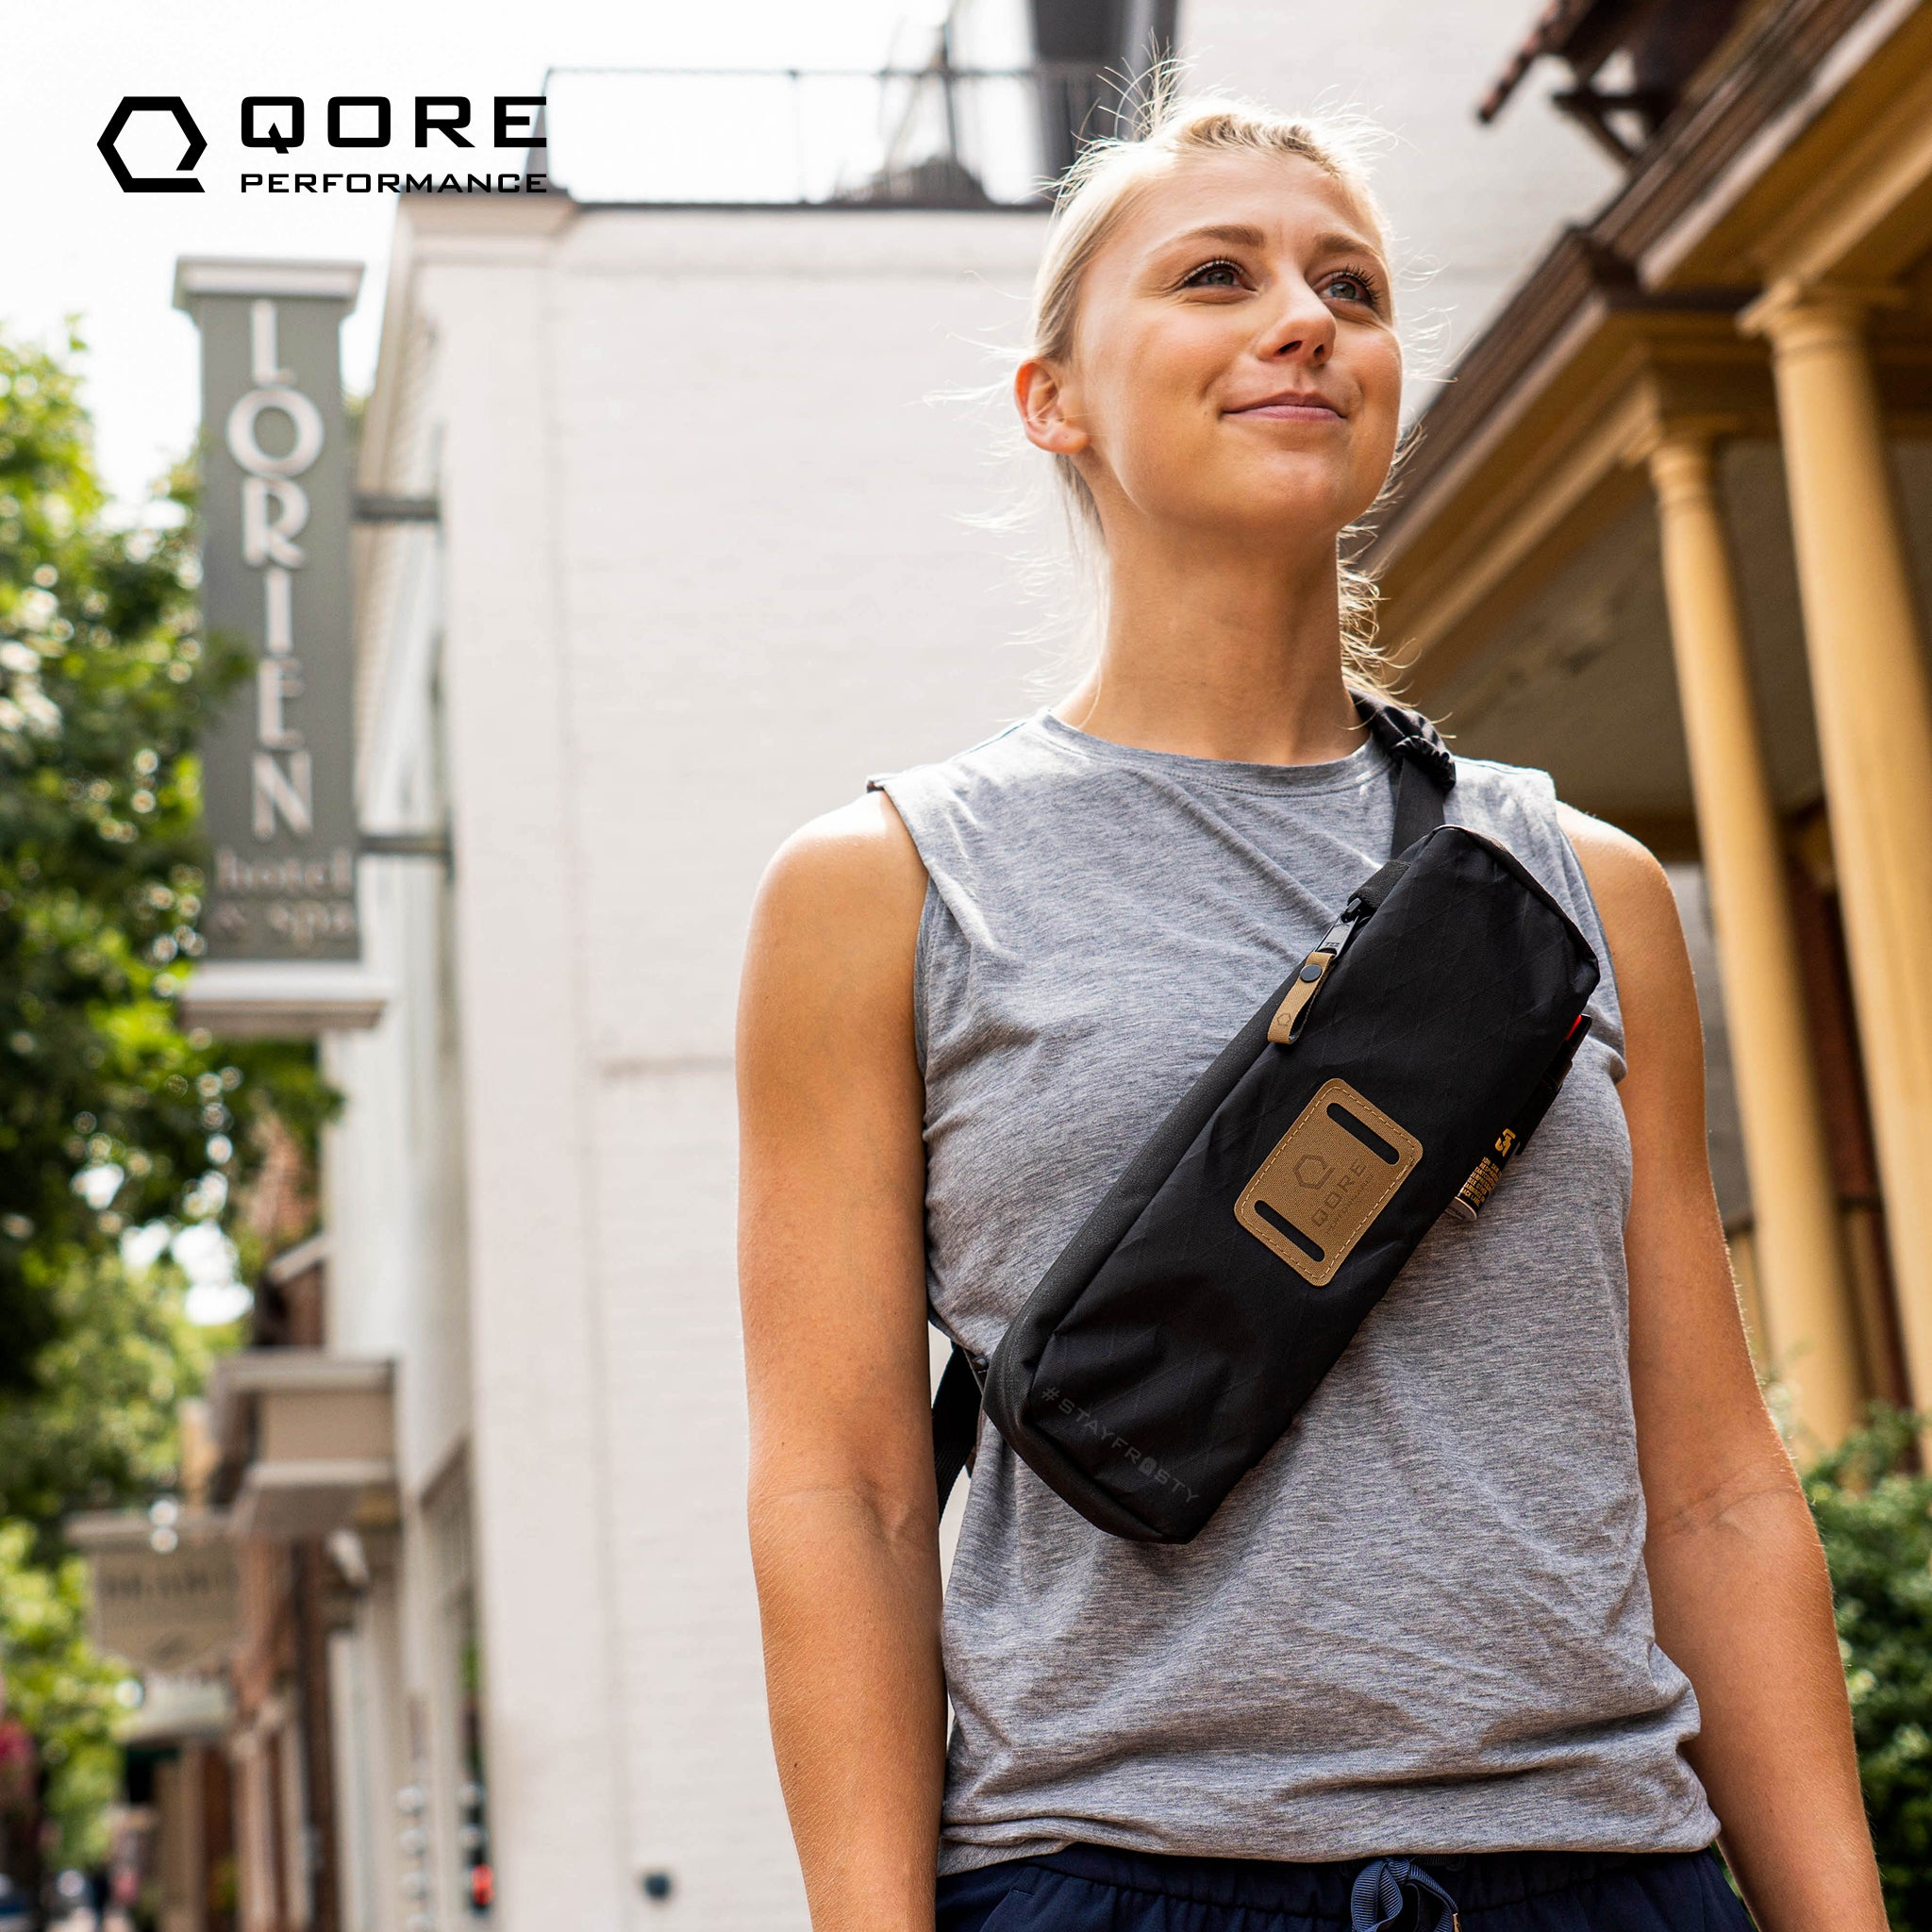 EDC Travel Sling by Qore Performance for walking, hiking, travel, every day carry, bike riding can carry a Taser Pulse, Glock 43, Sig Sauer P365, or Pepper Spray, hand-free hydration